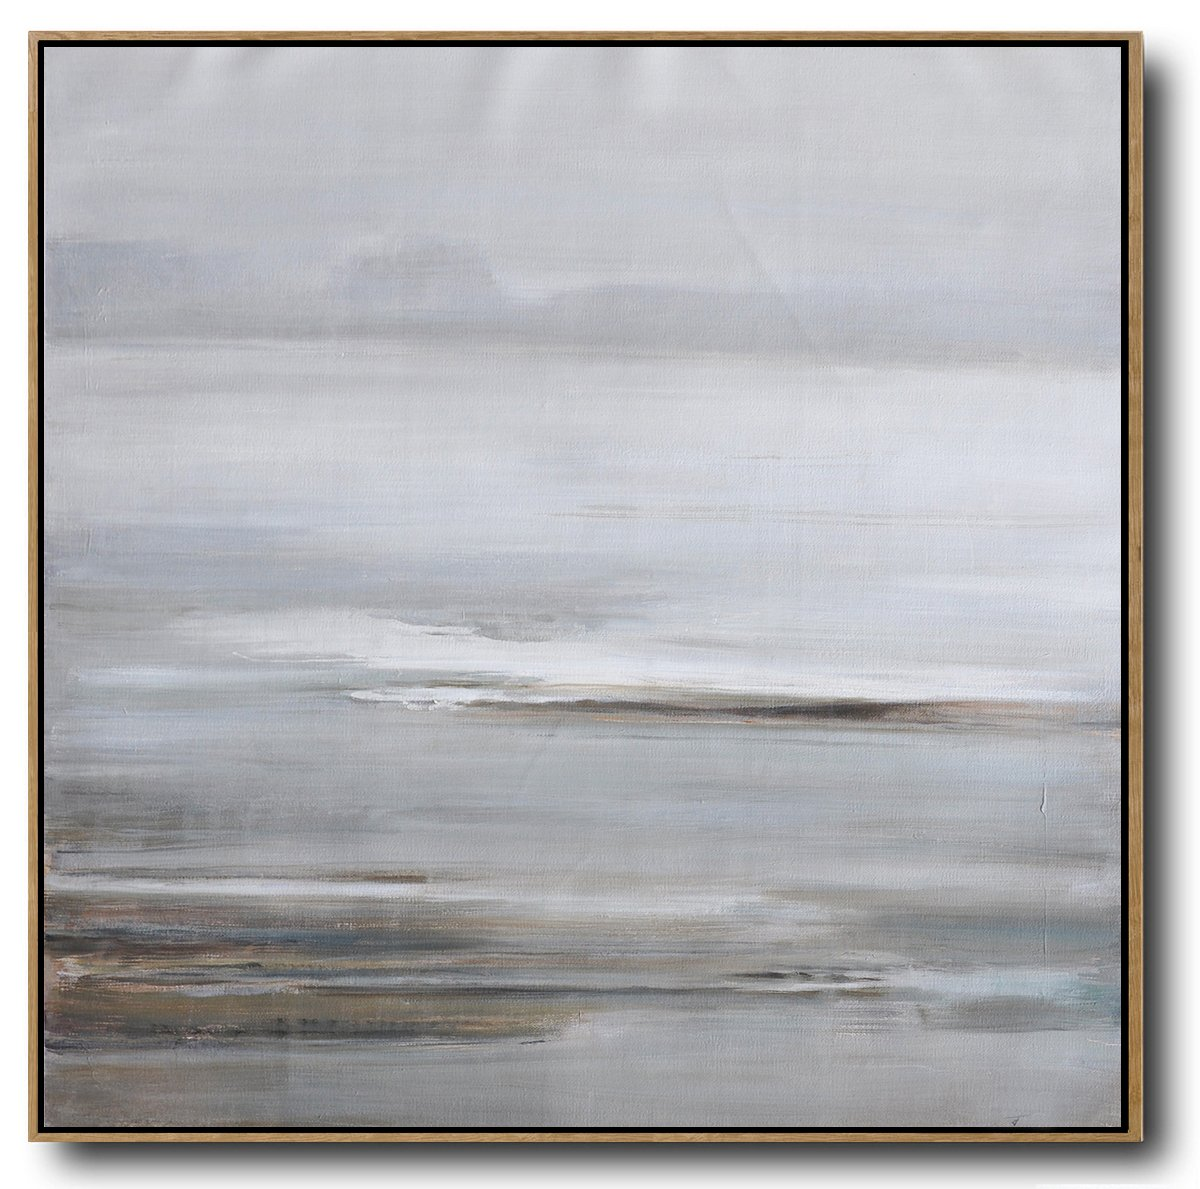 Abstract Painting Extra Large Canvas Art,Large Abstract Landscape Oil Painting On Canvas,Custom Canvas Wall Art,White,Grey,Brown.etc